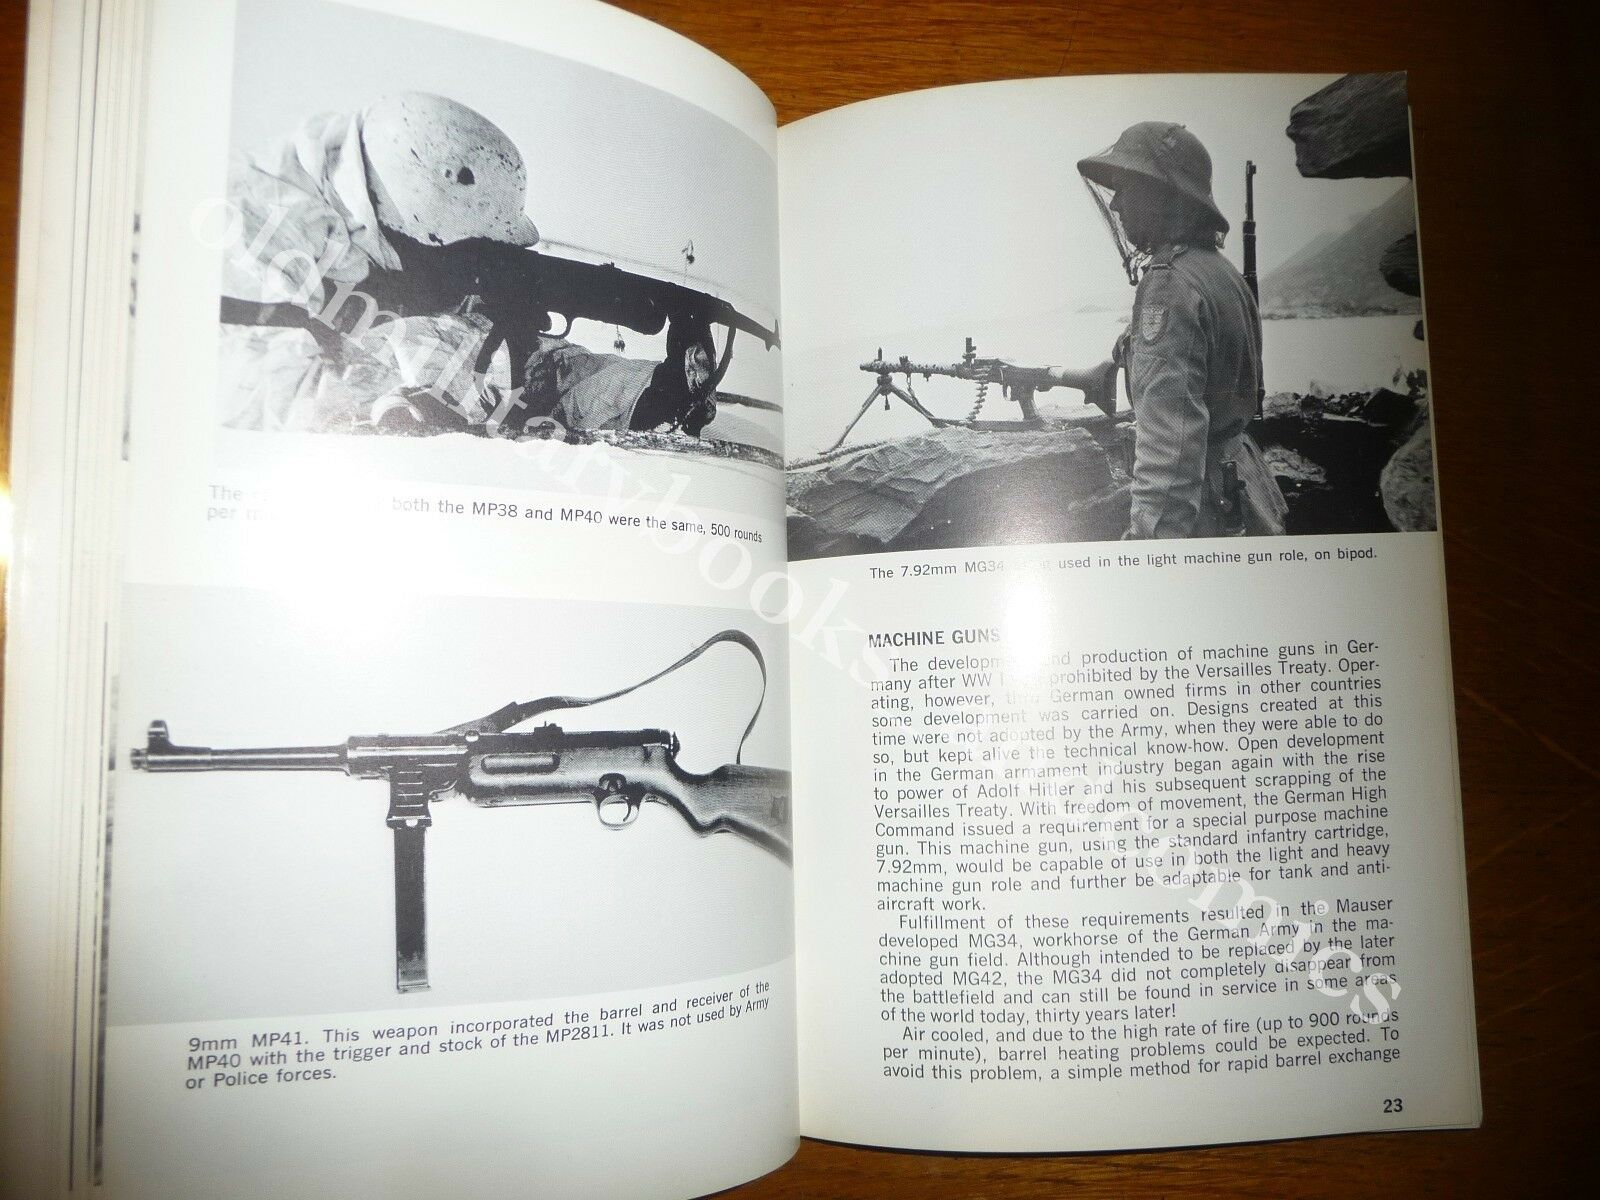 WEAPONS OF THE GERMAN INFANTRY DURING WORLD WAR II LE ARMI TEDESCHE NELLA WWII